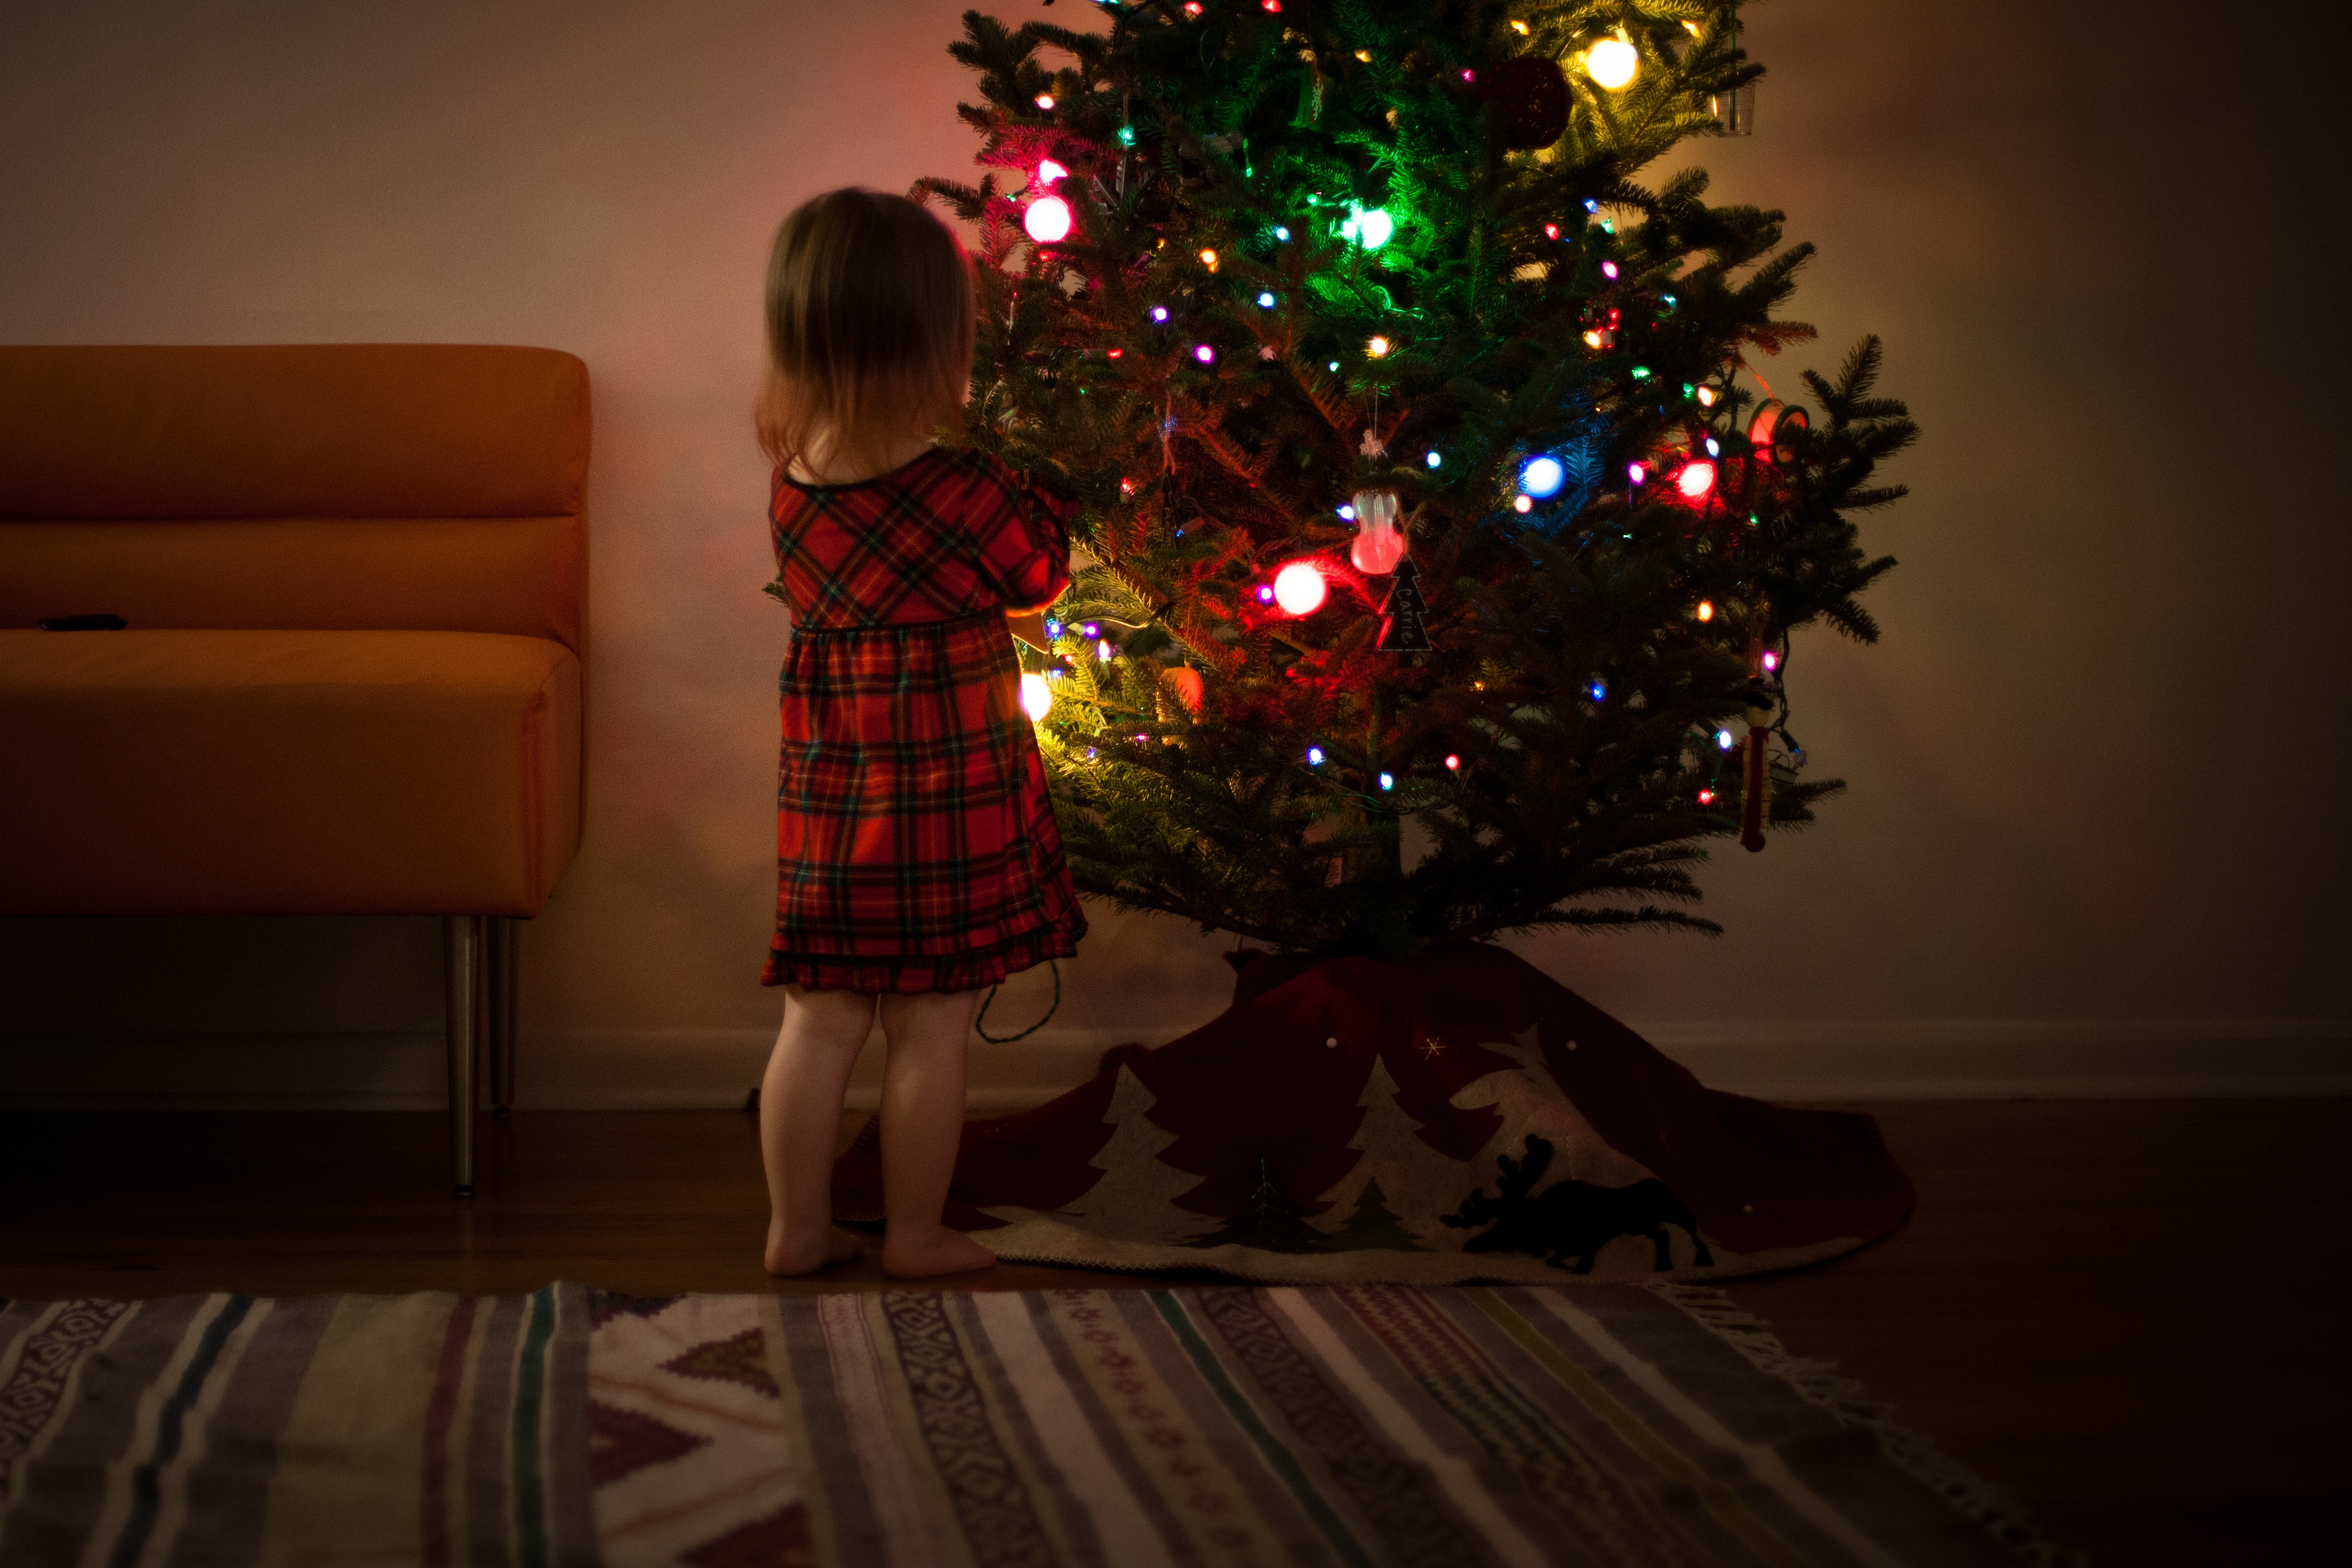 Girl in red and black dress standing in front of christmas tree inside room photo